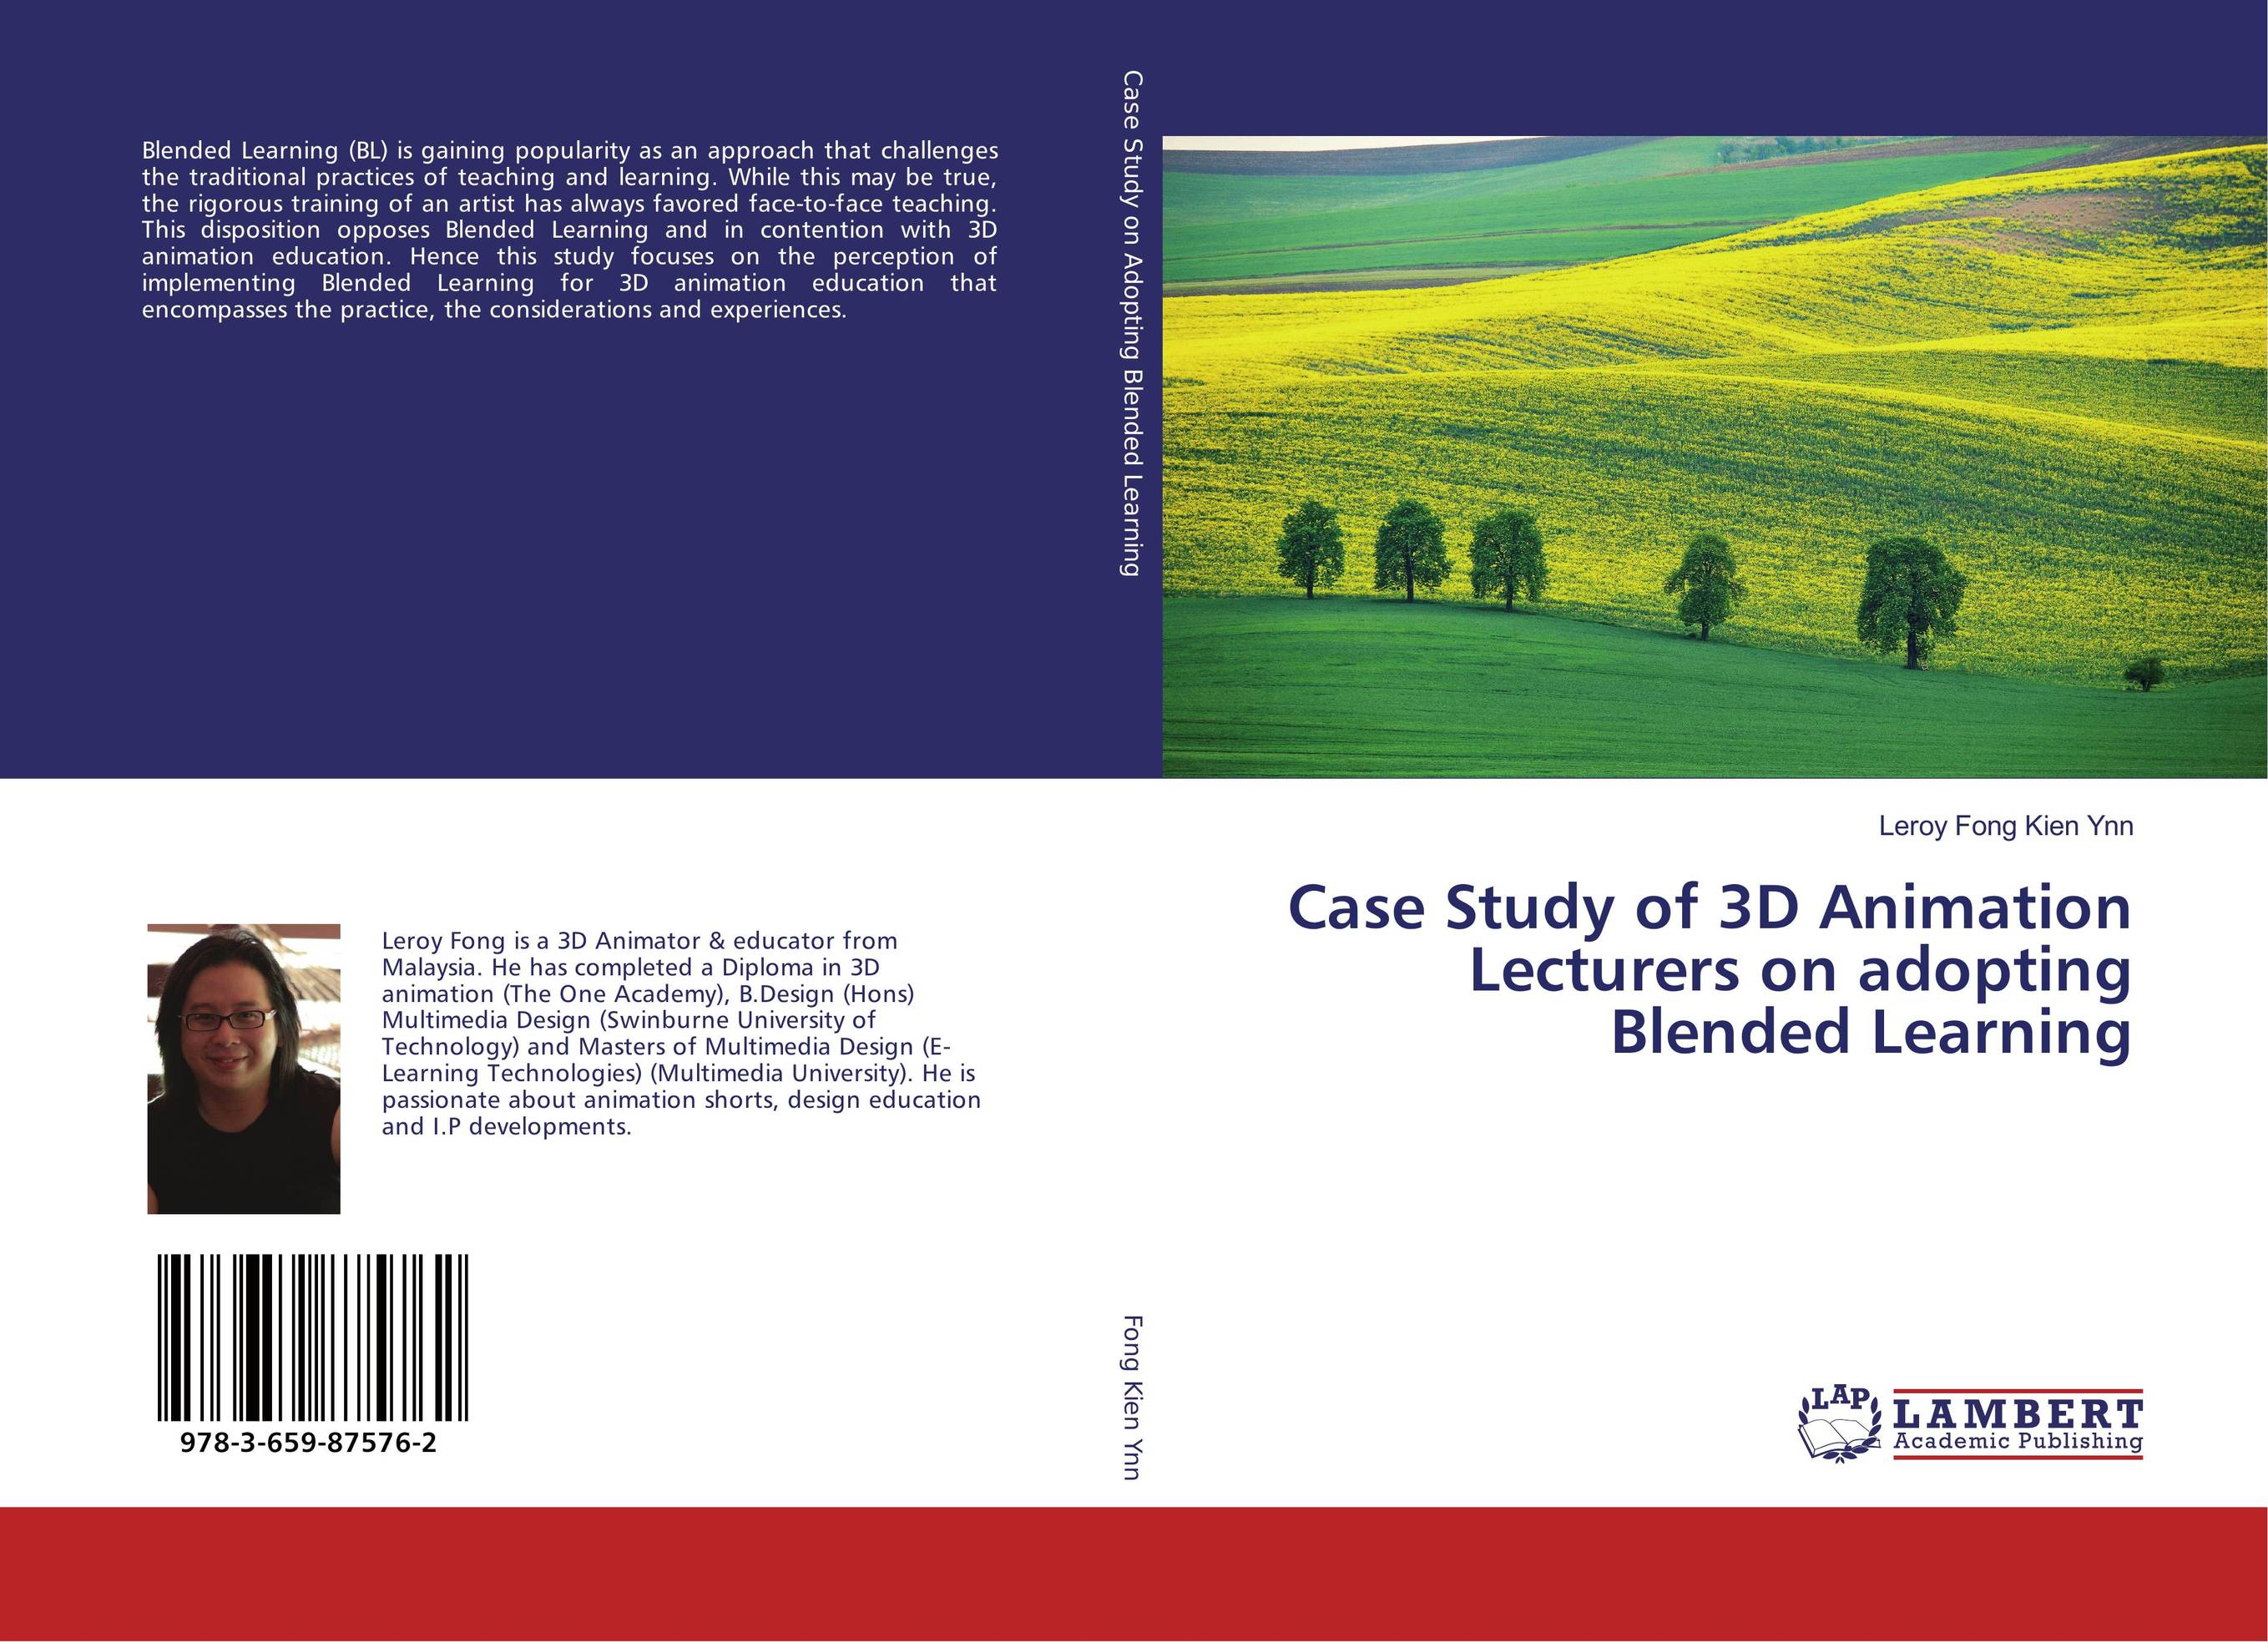 Case Study of 3D Animation Lecturers on adopting Blended Learning effectiveness of blended learning on achievement of english vocabulary